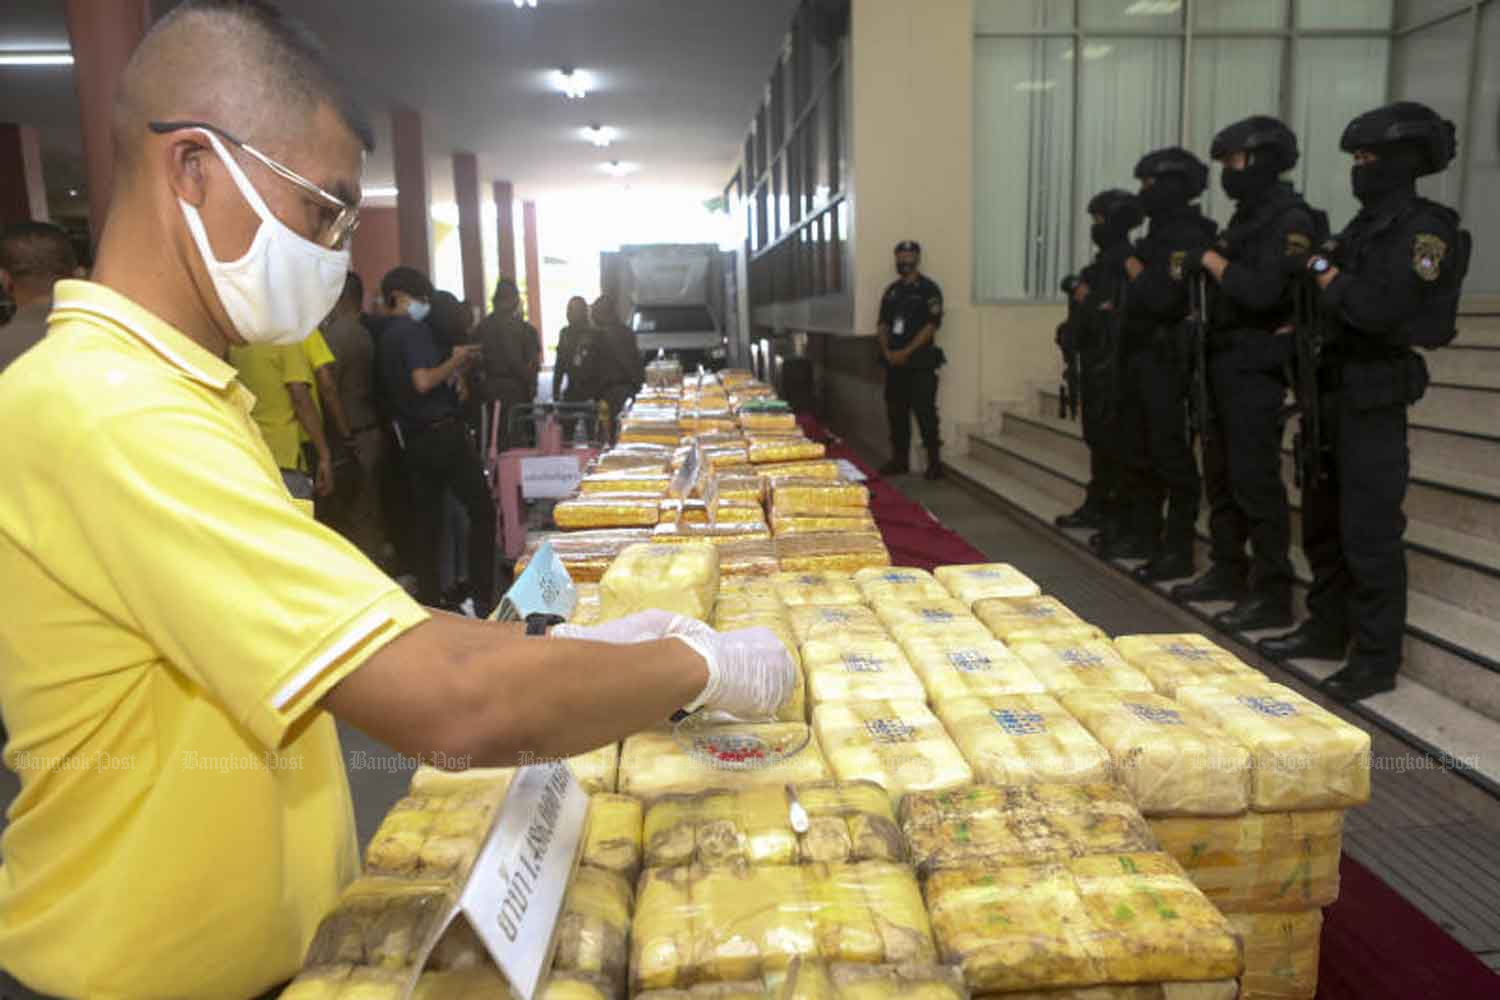 Drugs are put on display at the Narcotic Suppression Bureau in Bangkok on Tuesday after they were seized from suspects during the long weekend. (Photo: Pattarapong Chatpattarasill)